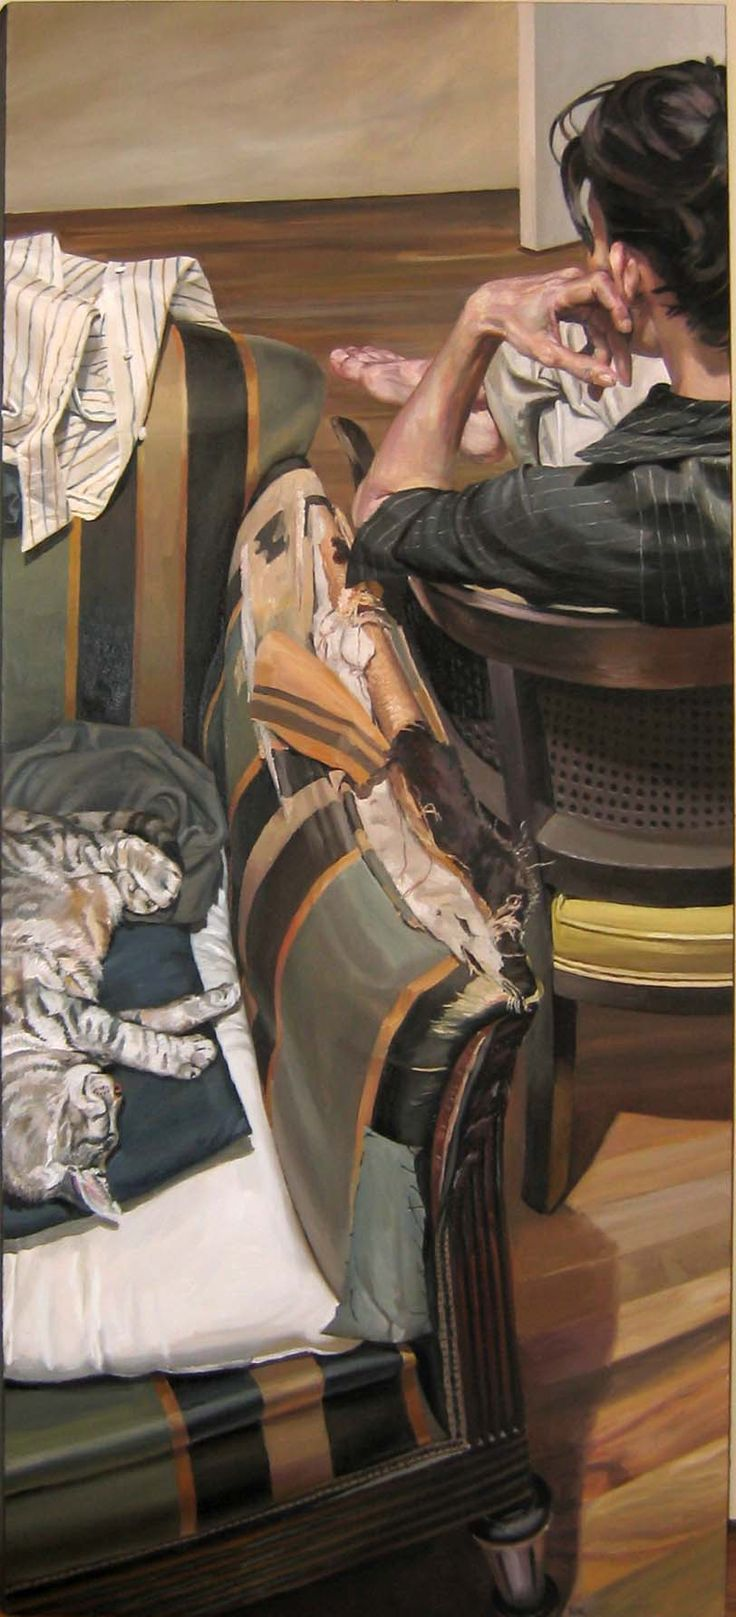 Cats in Art and Illustration: Two Ships, 66 x 30, oil on canvas, by Stephen Wright.